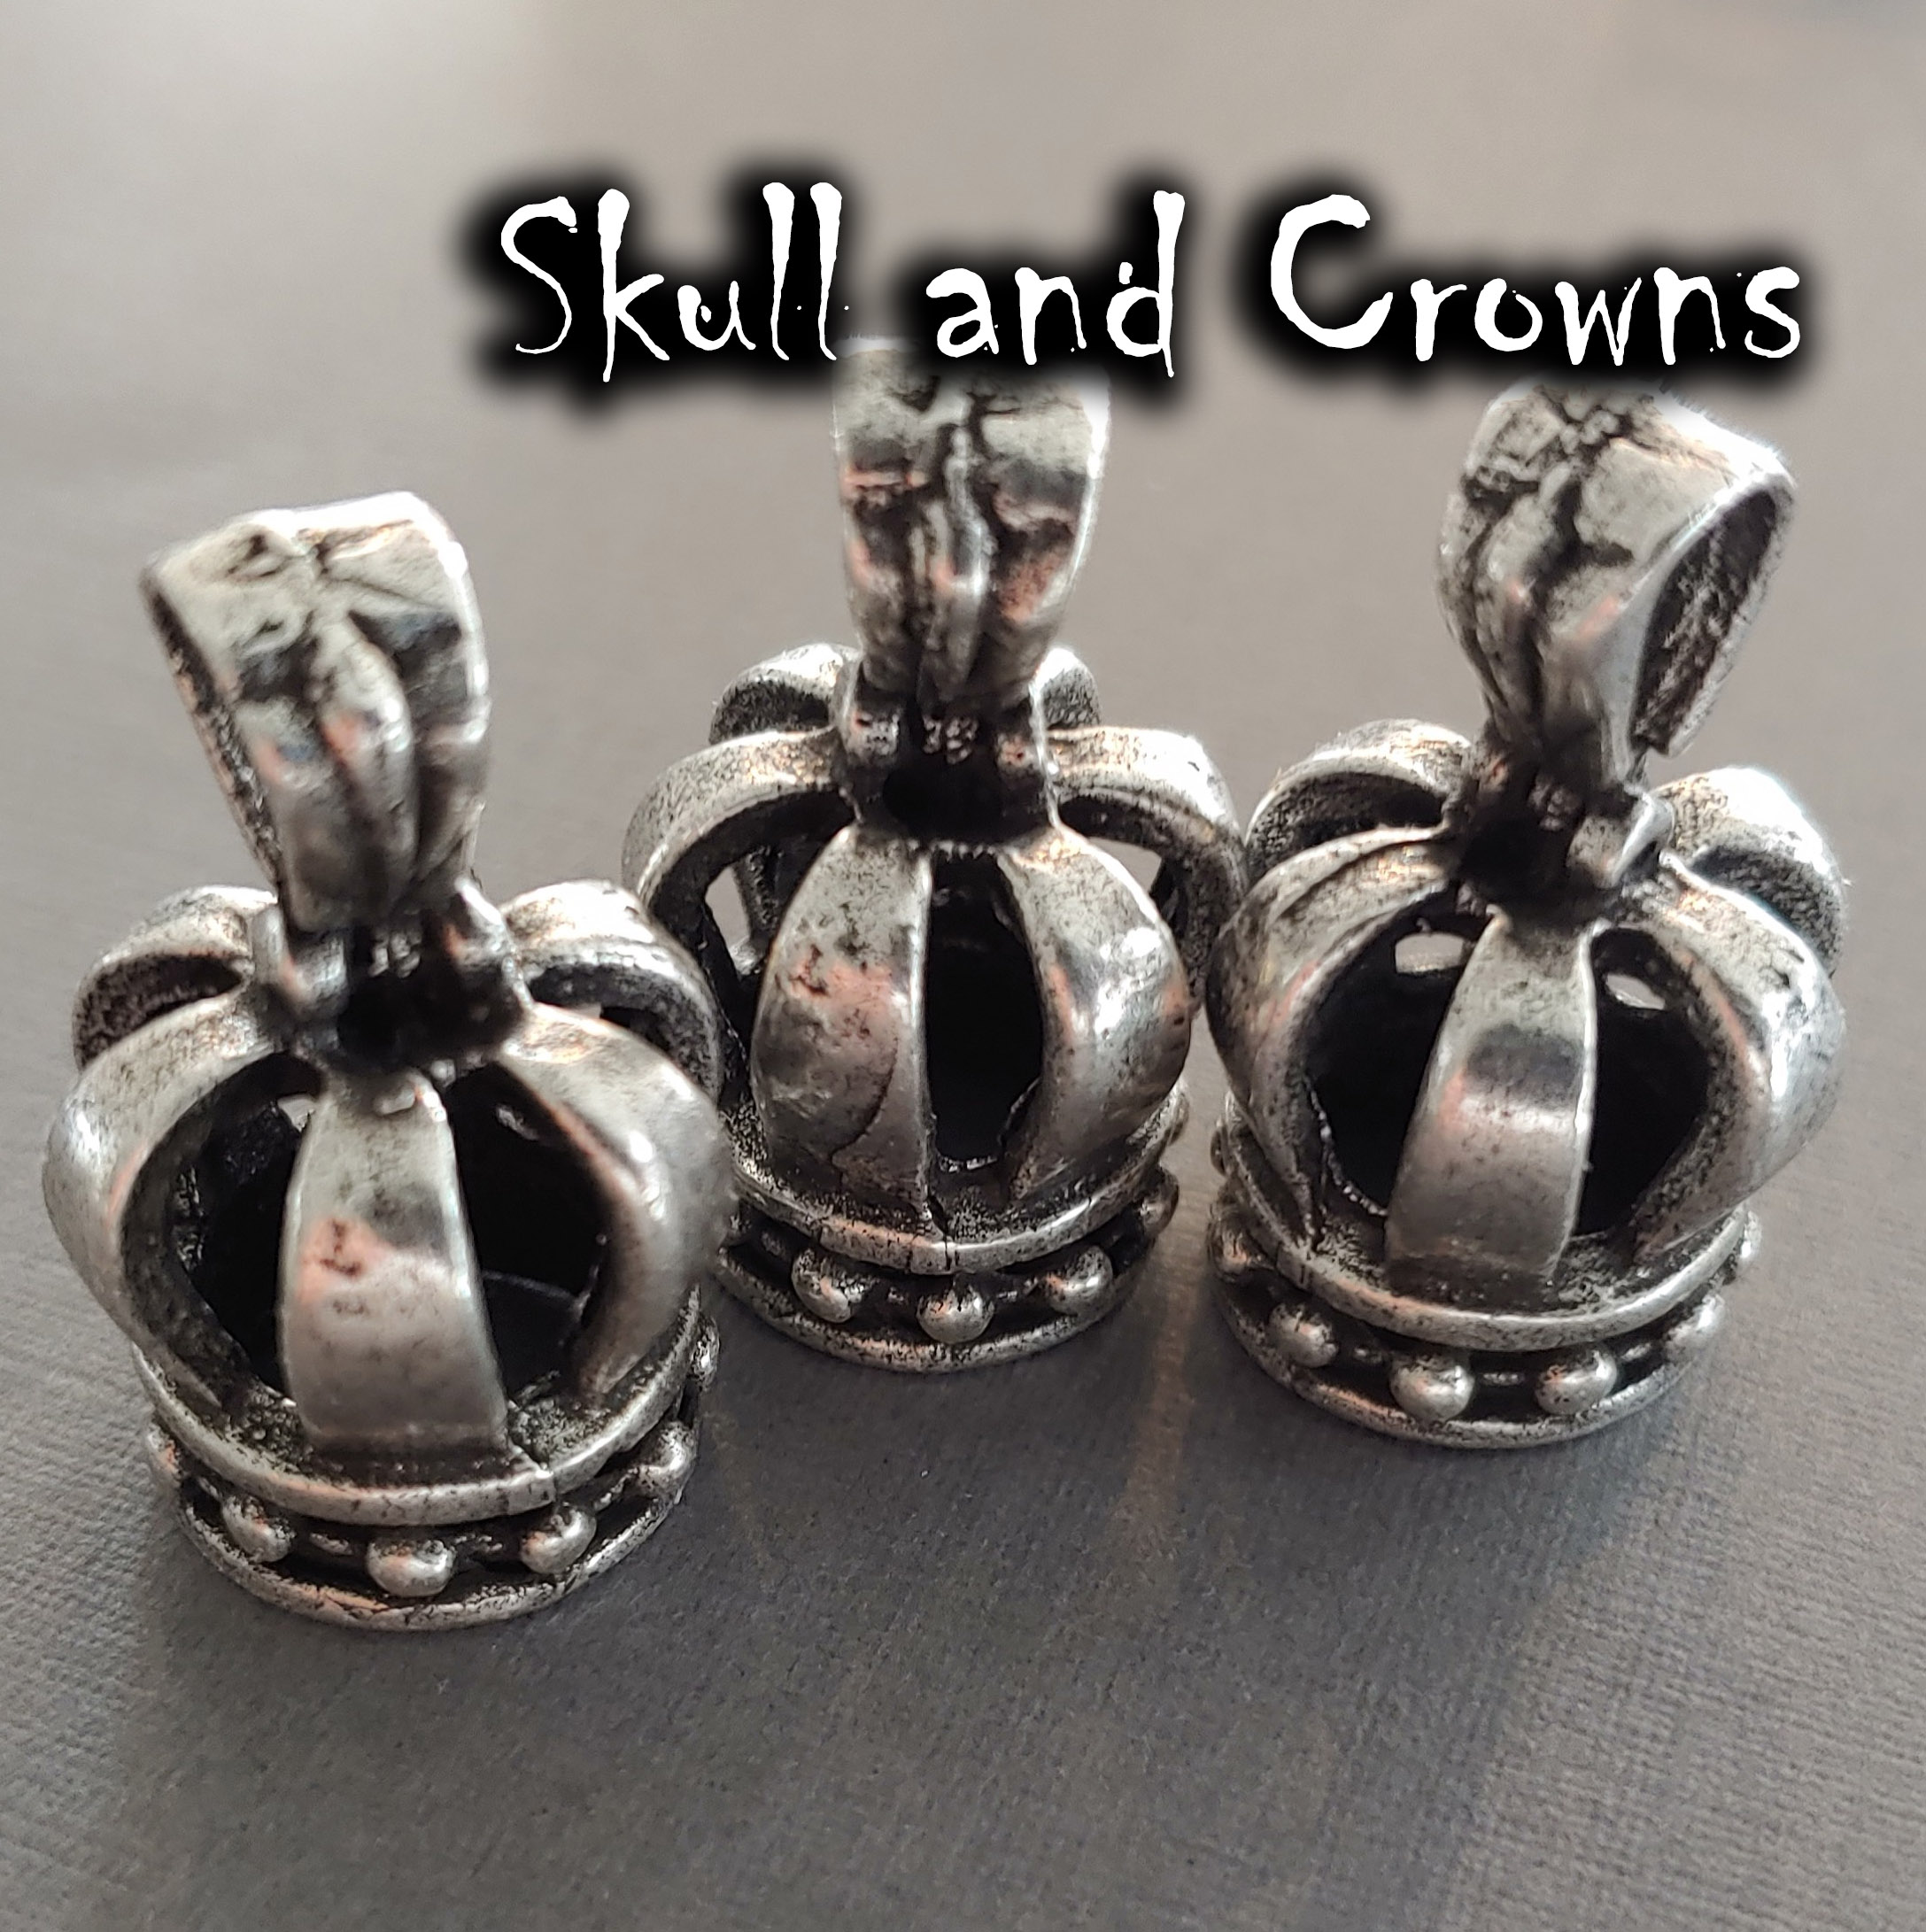 Skull and Crowns